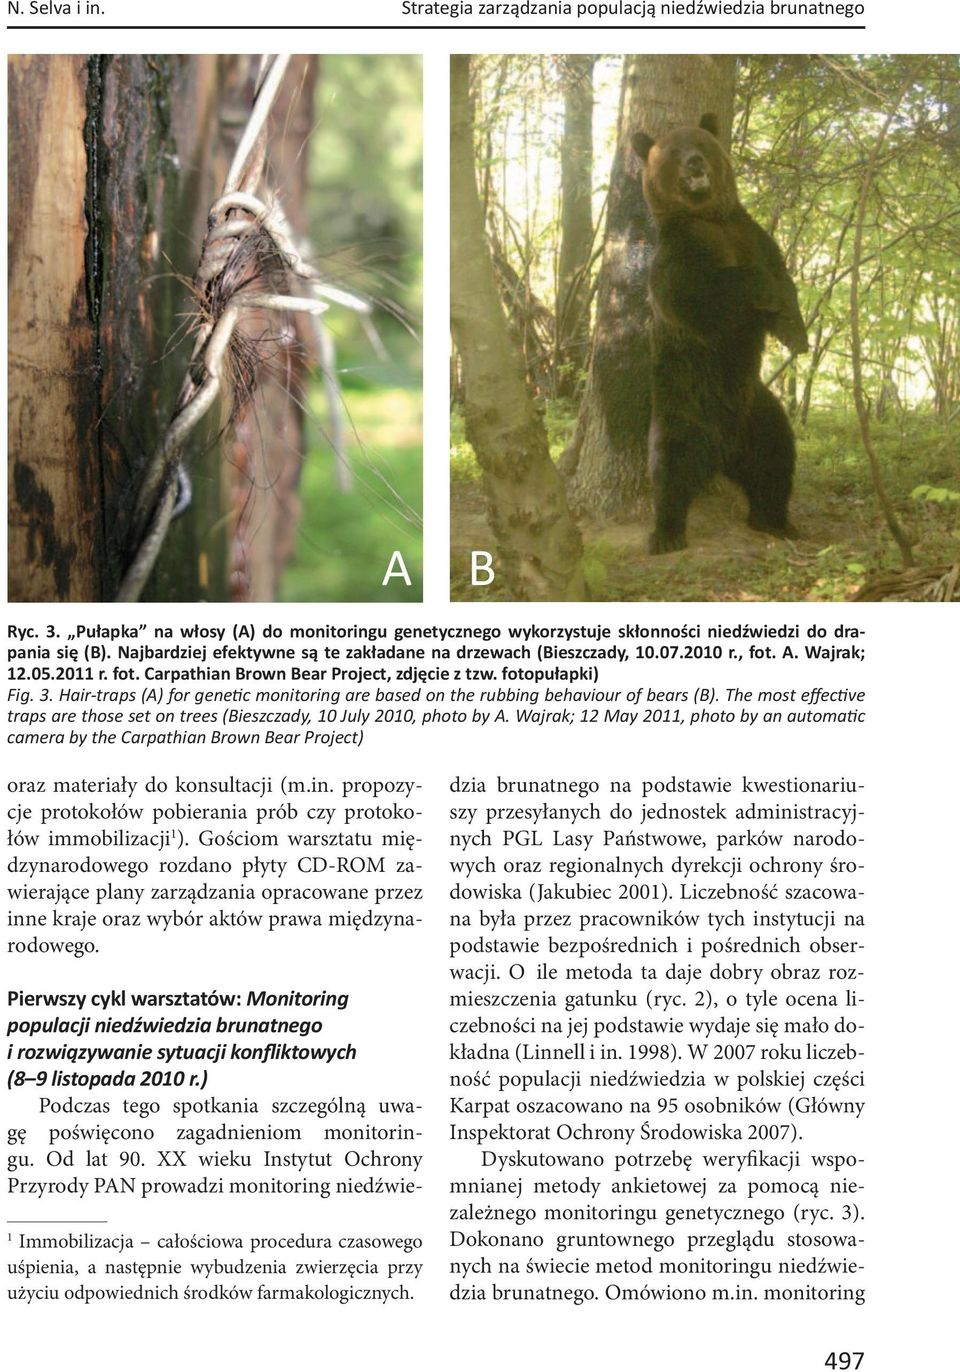 Hair-traps (A) for gene c monitoring are based on the rubbing behaviour of bears (B). The most effec ve traps are those set on trees (Bieszczady, 10 July 2010, photo by A.